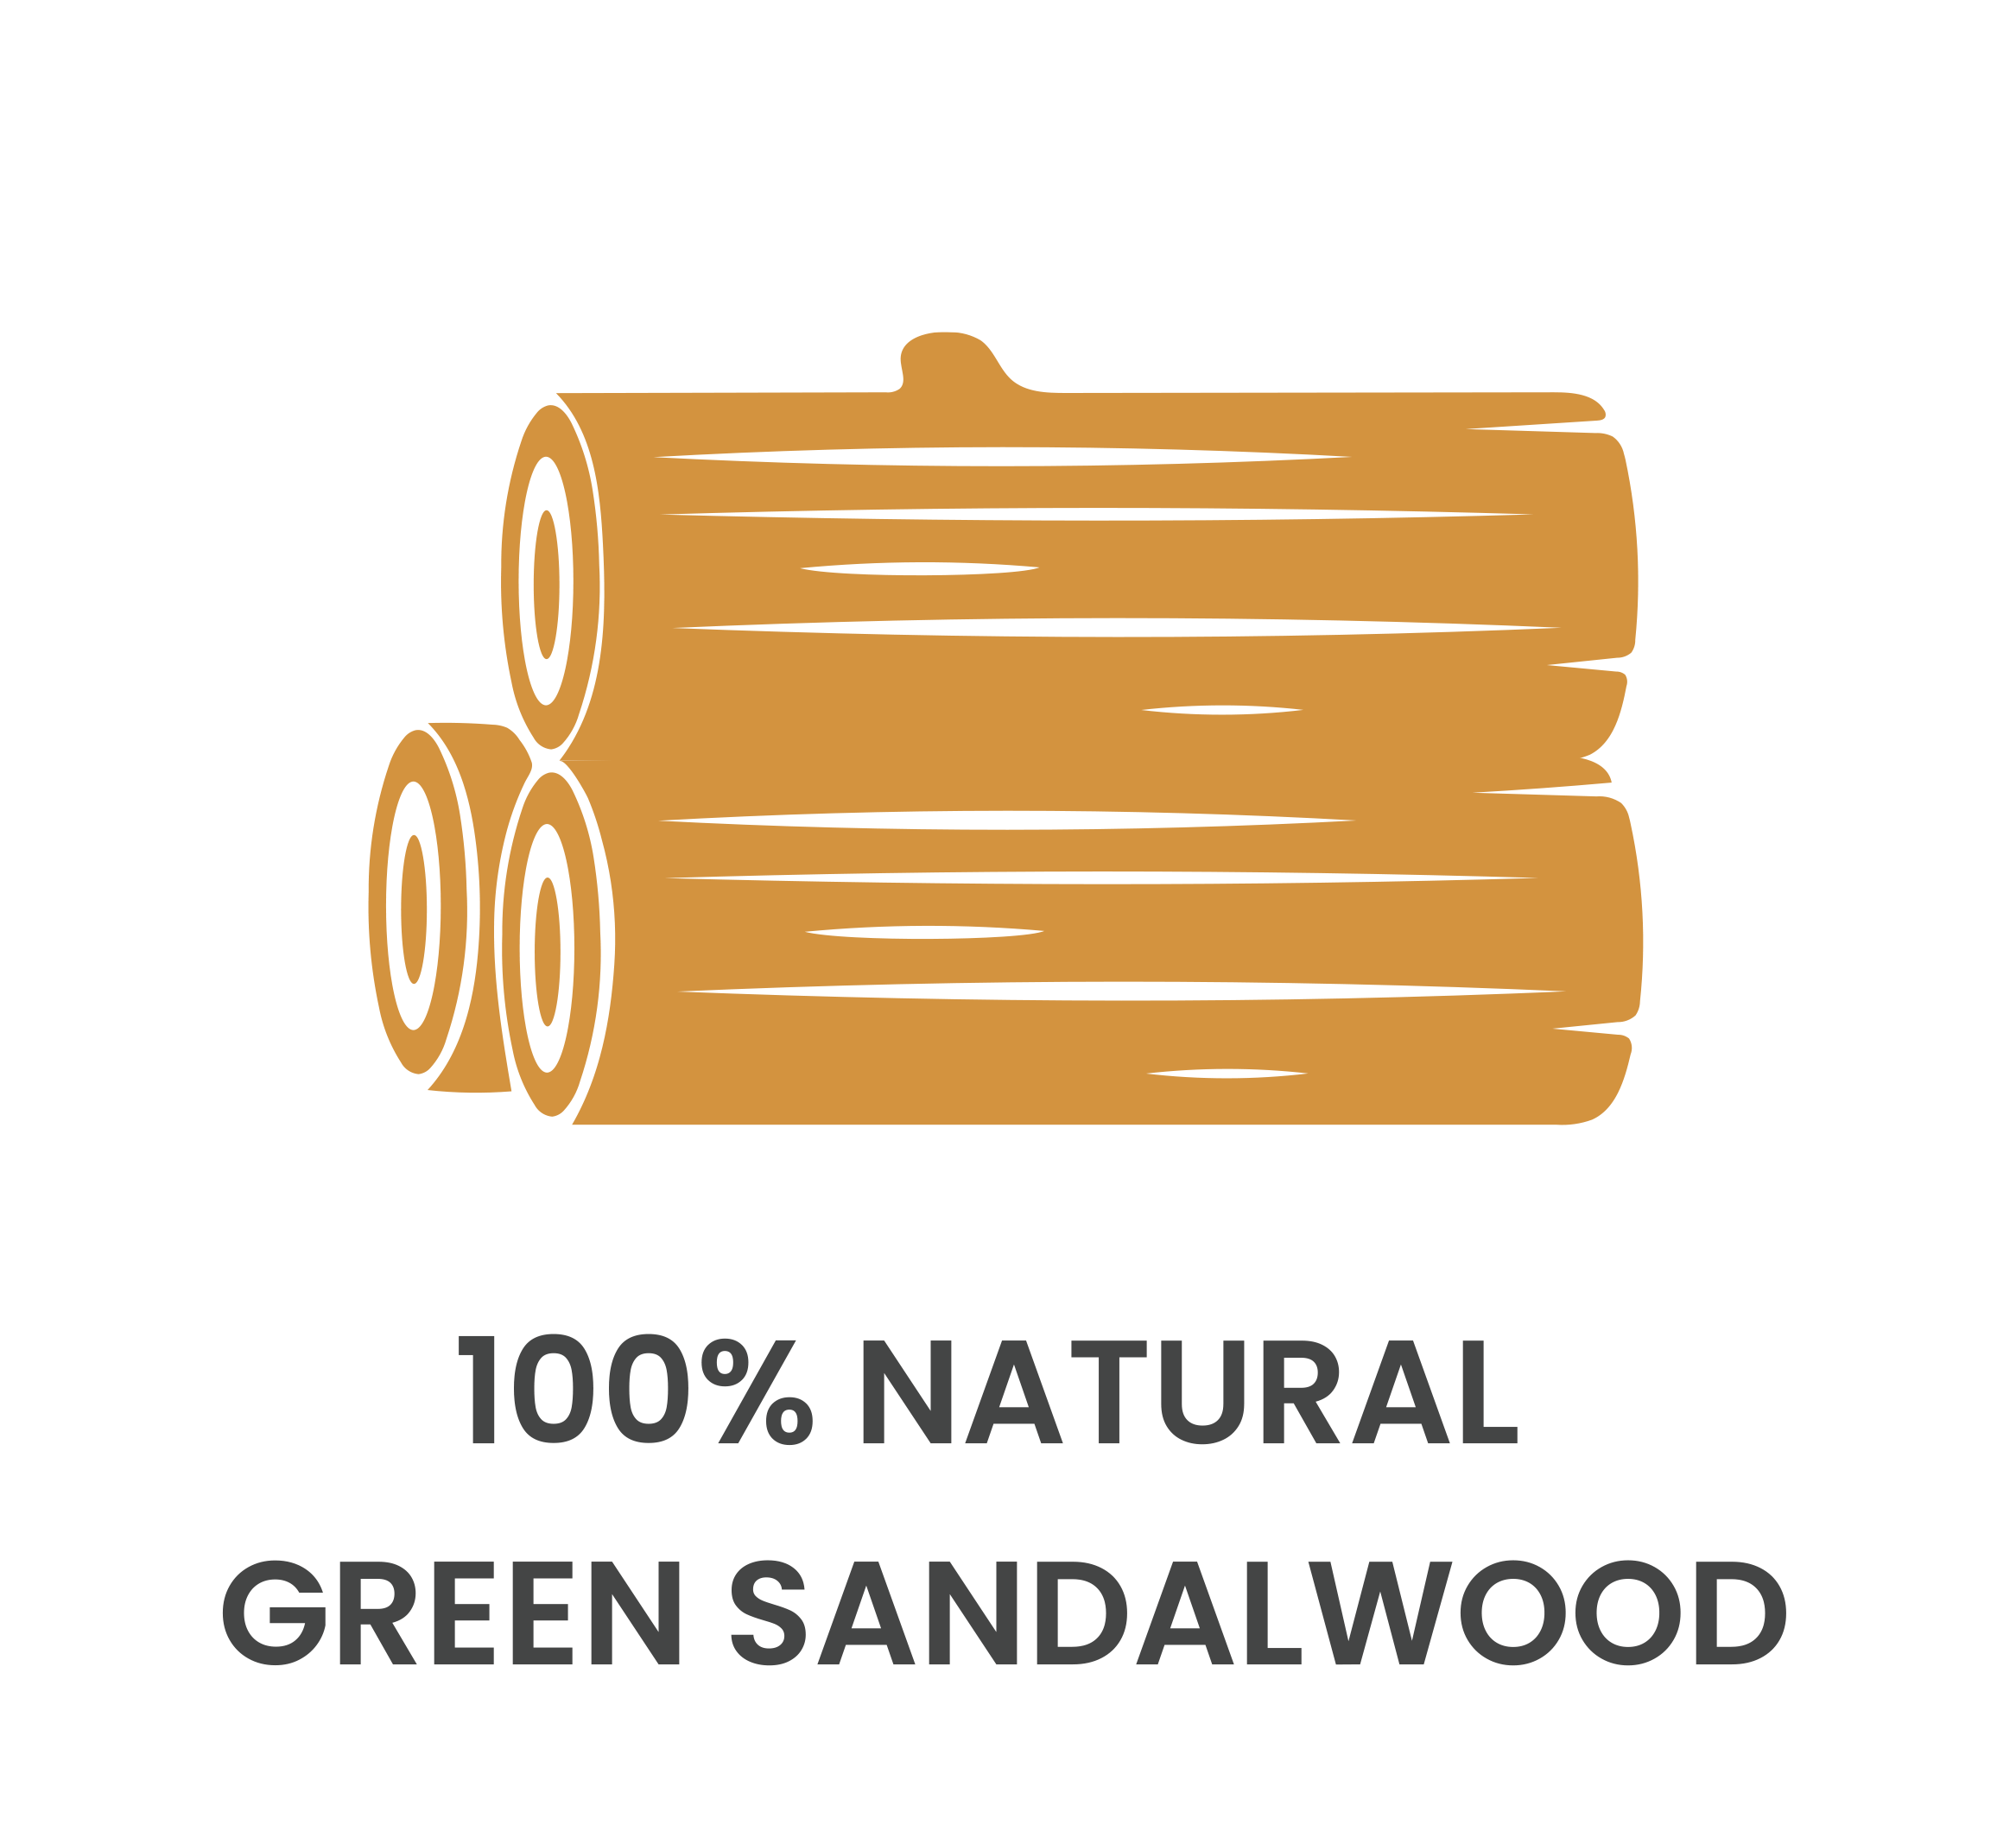 100% Green Sandalwood